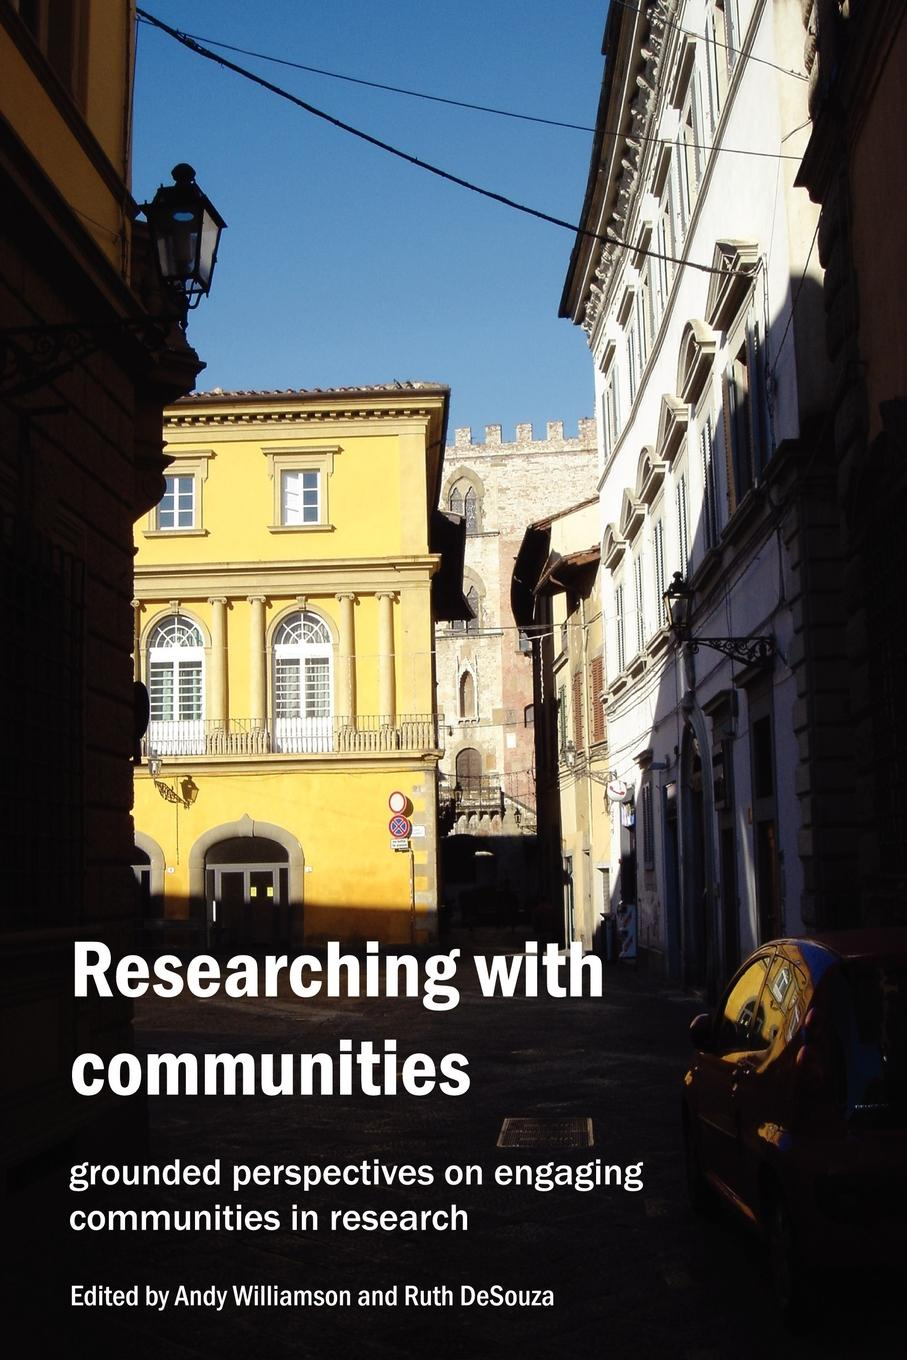 Ruth DeSouza, Andy Williamson Researching with Communities. Grounded perspectives on engaging communities in research harris beider race housing and community perspectives on policy and practice